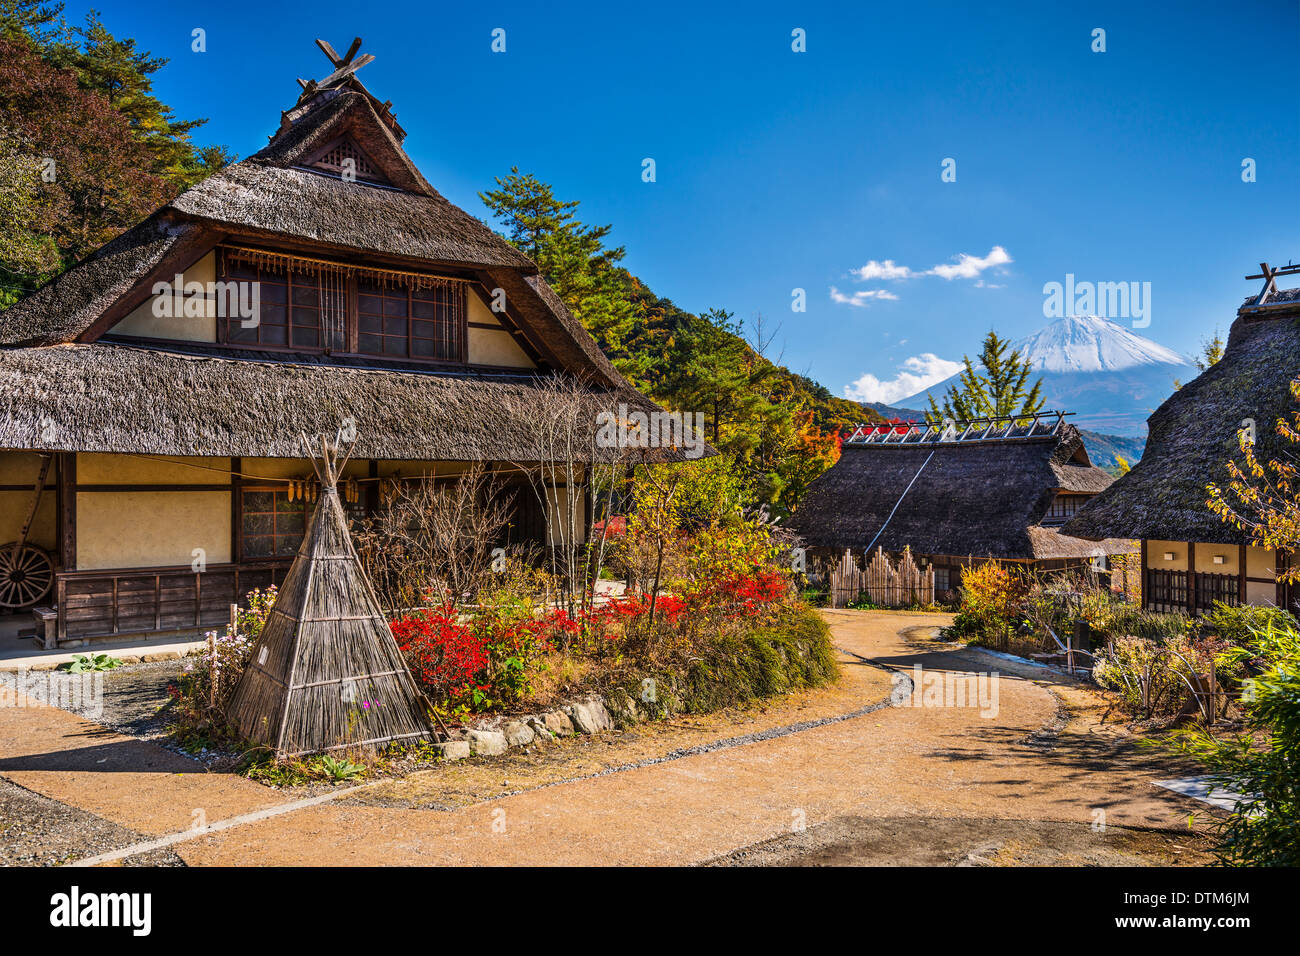 Japan at Iyashi No Sato Village with Mt. Fuji in the distance. - Stock Image